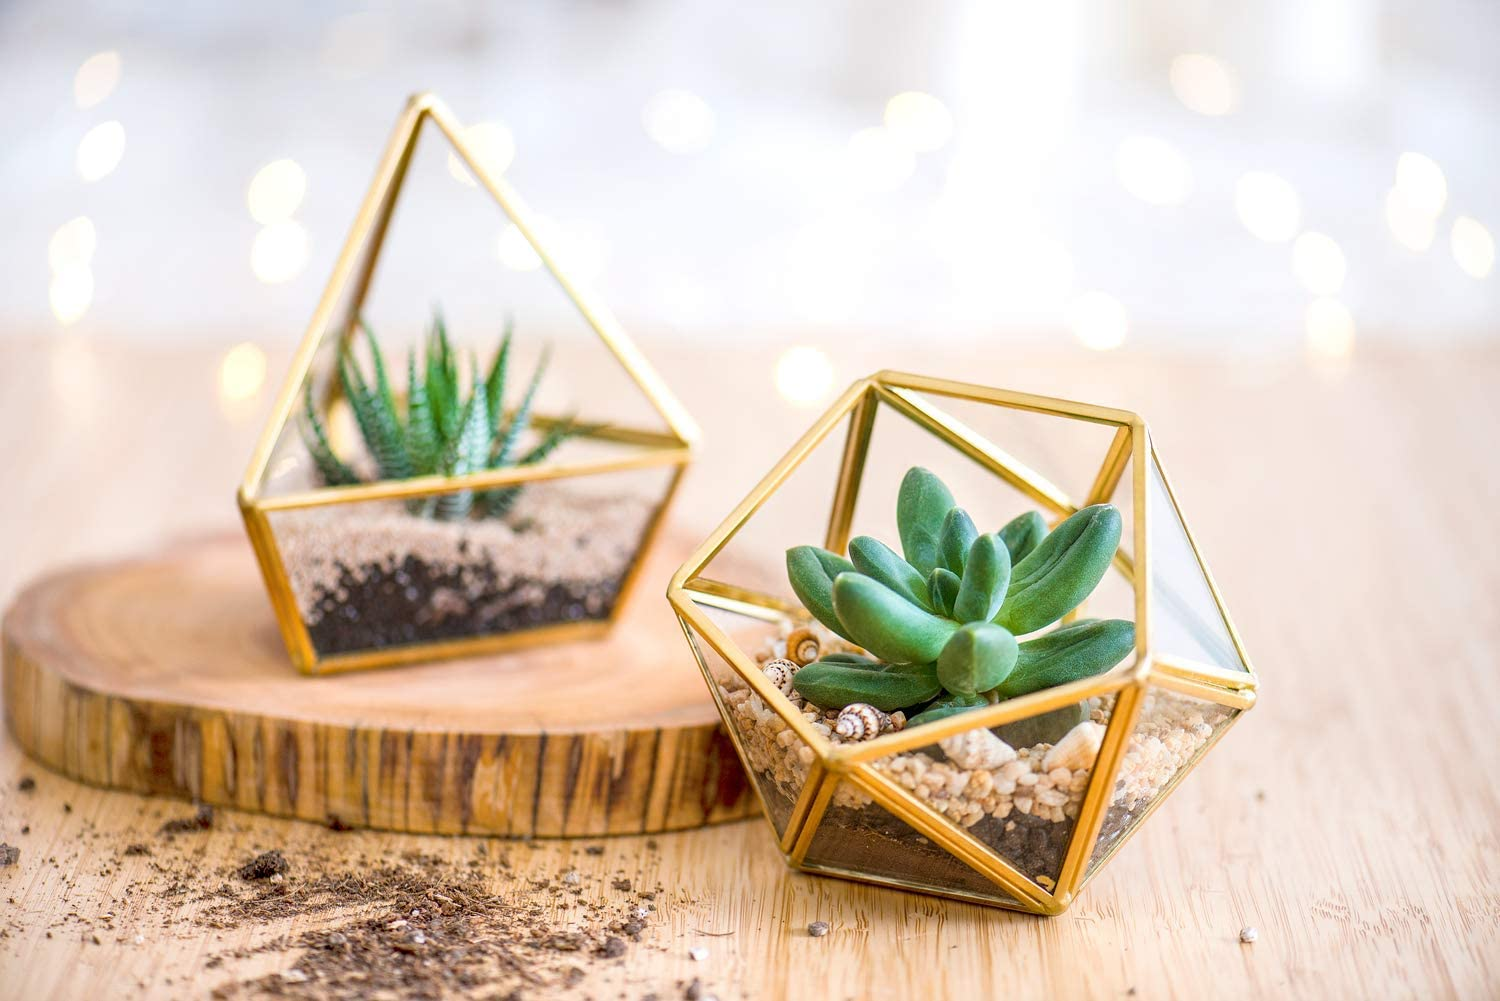 Fairy Garden Gold Mkouo 3 Packs Mini Glass Geometric Terrarium Container Modern Table Planter Windowsill Decor Floating